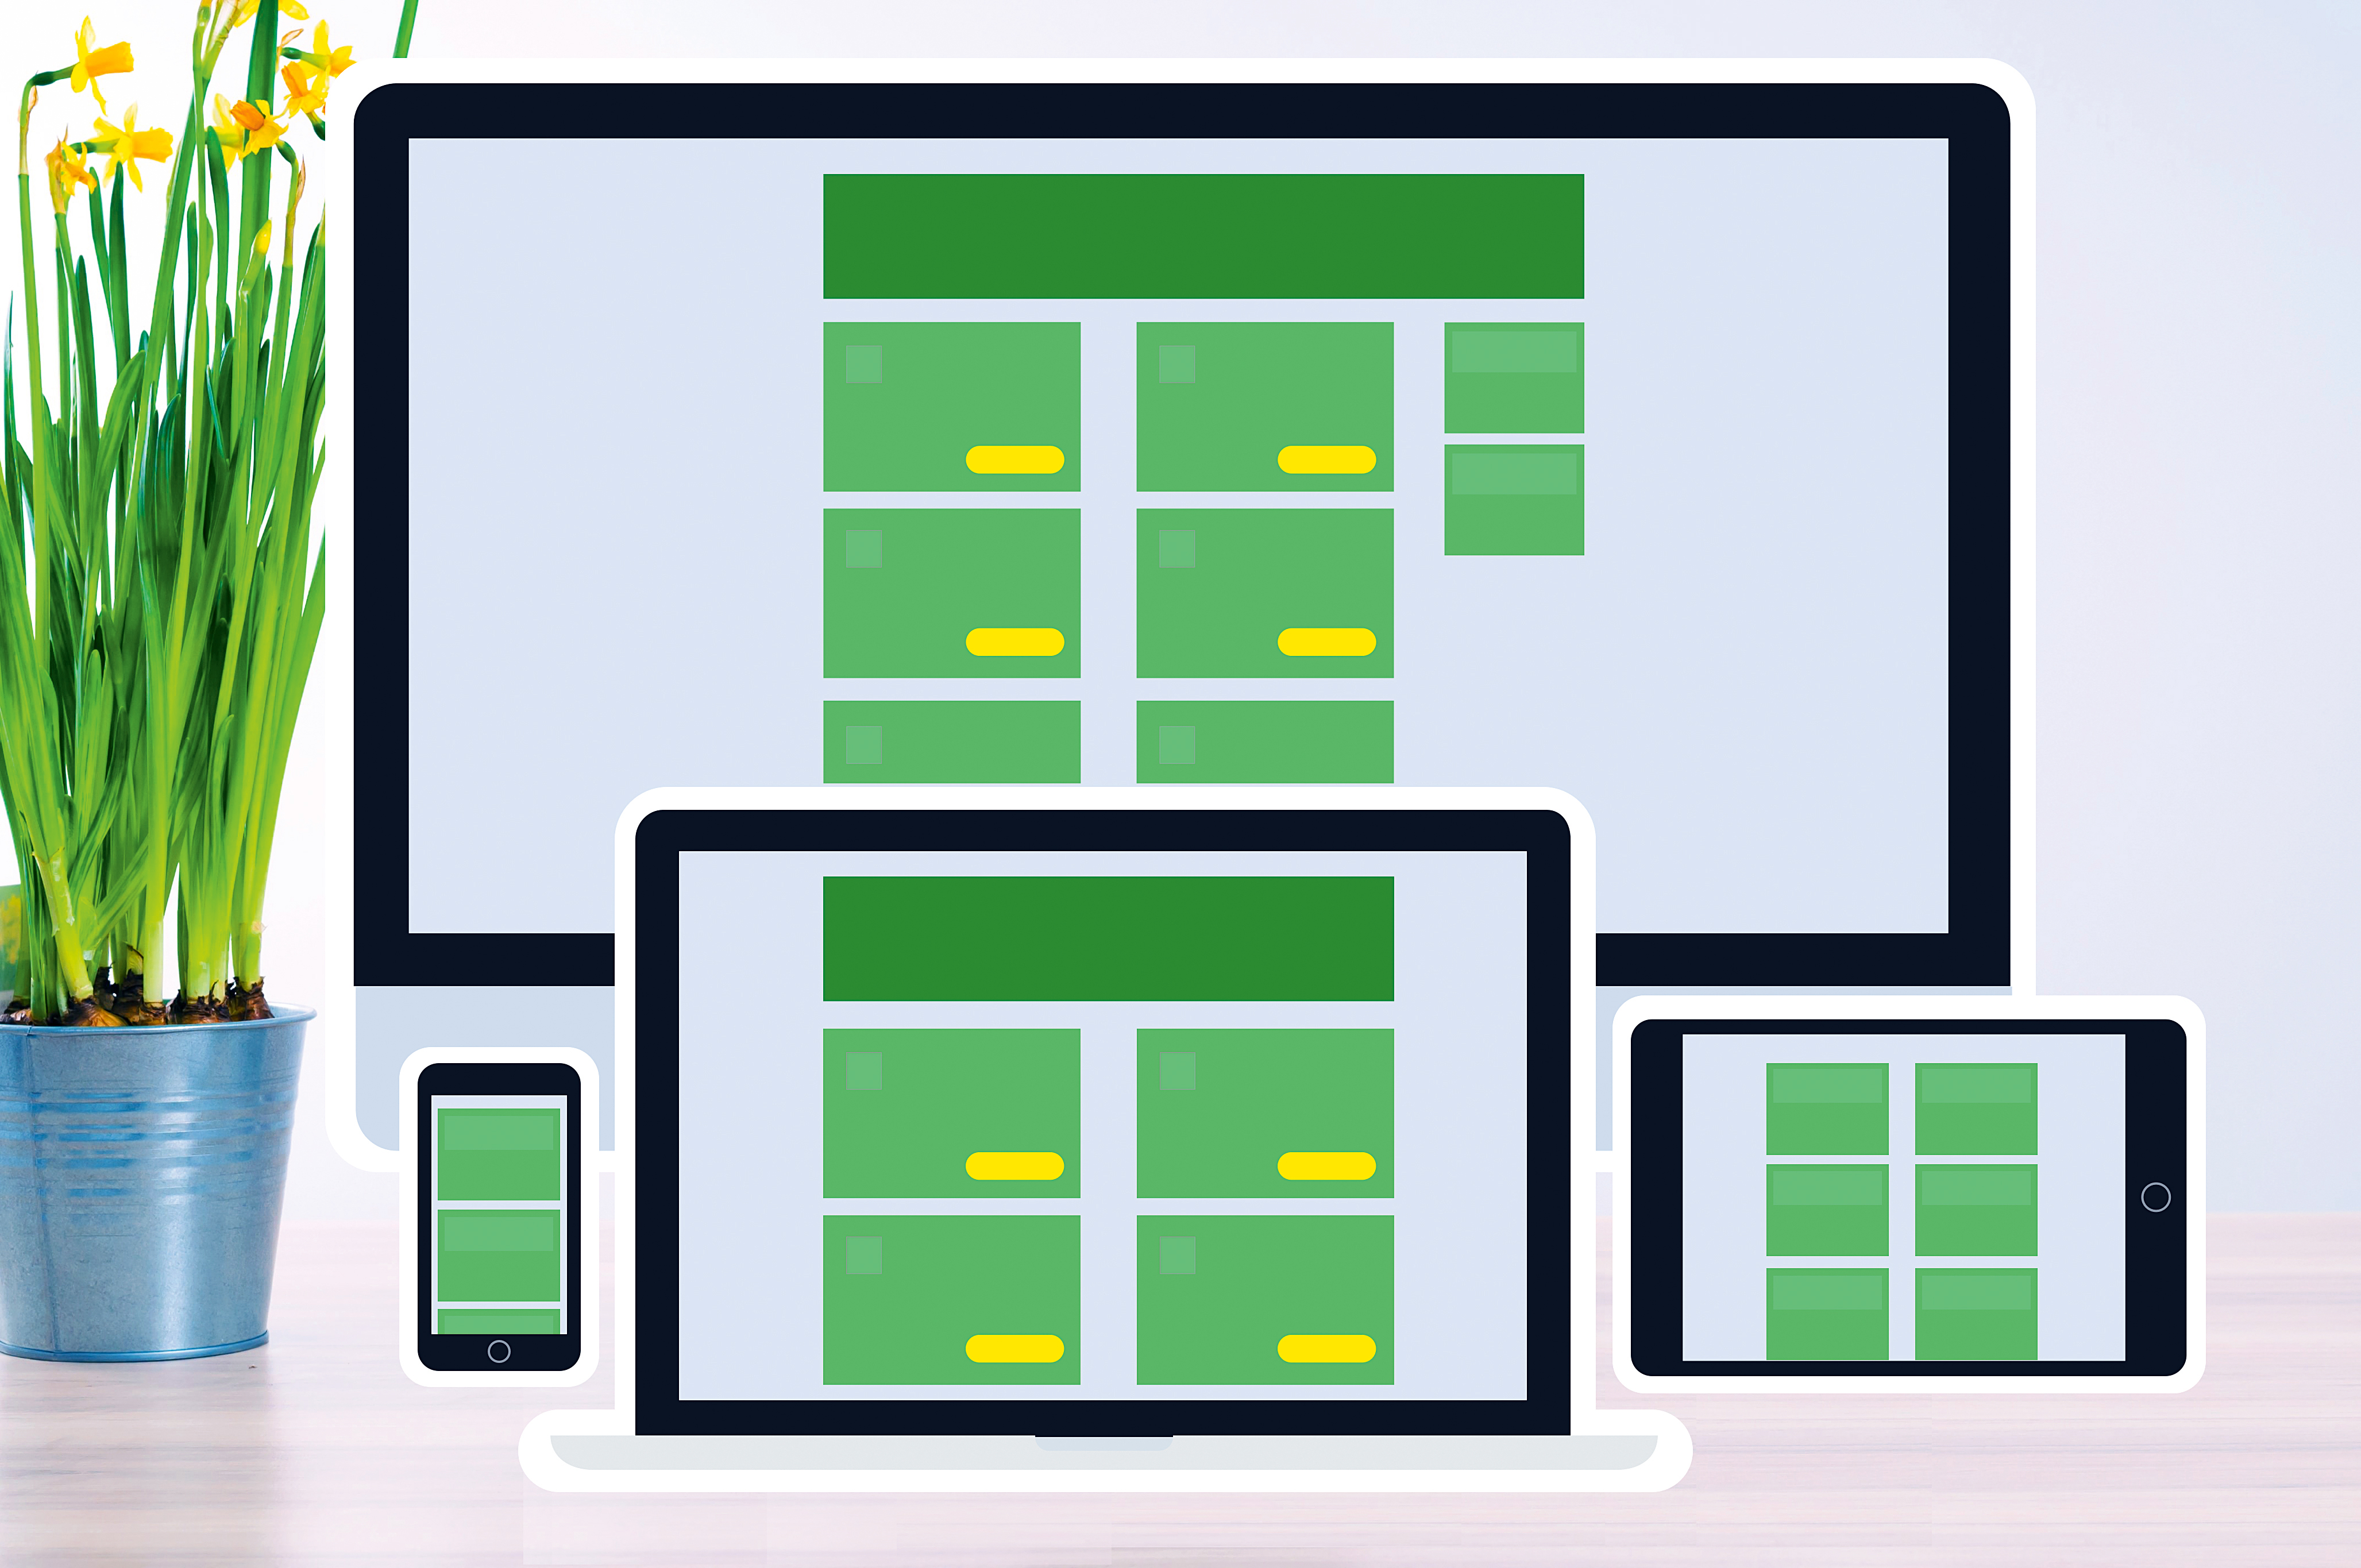 How to make responsive web apps with container queries